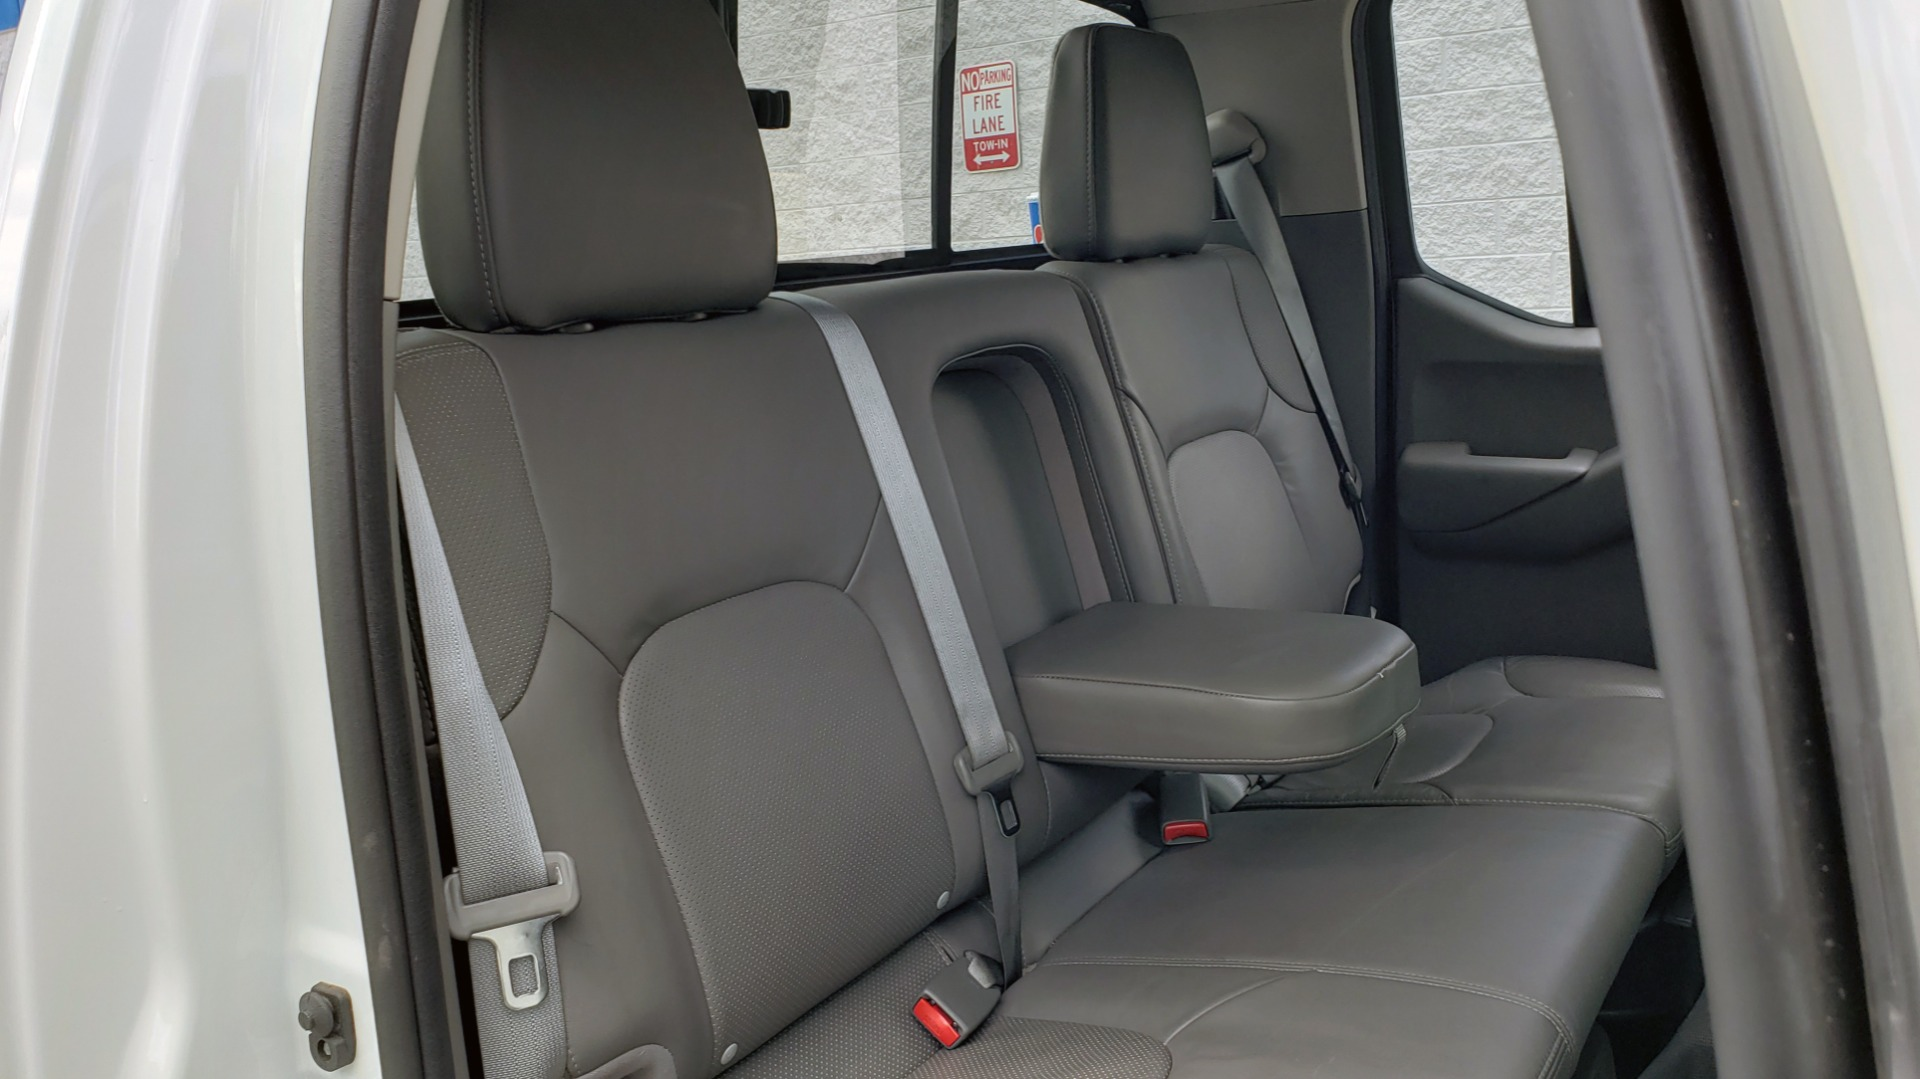 Used 2019 Nissan FRONTIER SL CREW CAB / 4X4 / NAV / SUNROOF / ROCKFORD FOSGATE / LOADED for sale $31,495 at Formula Imports in Charlotte NC 28227 66